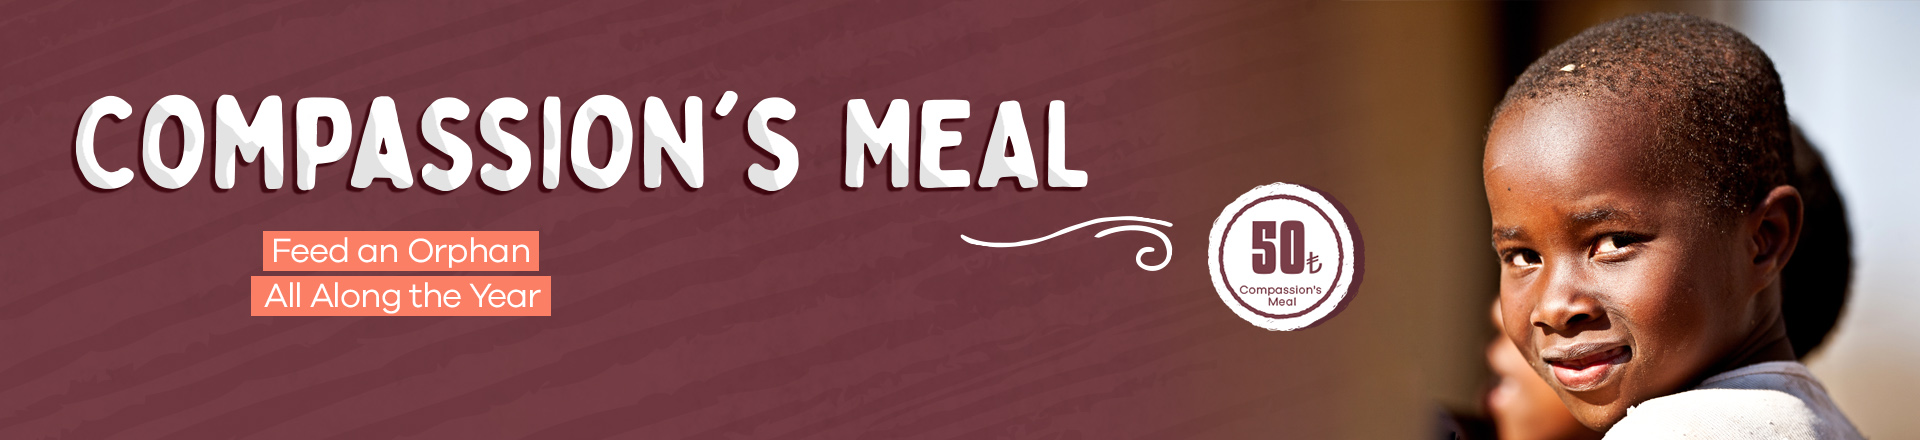 Compassion's Meal